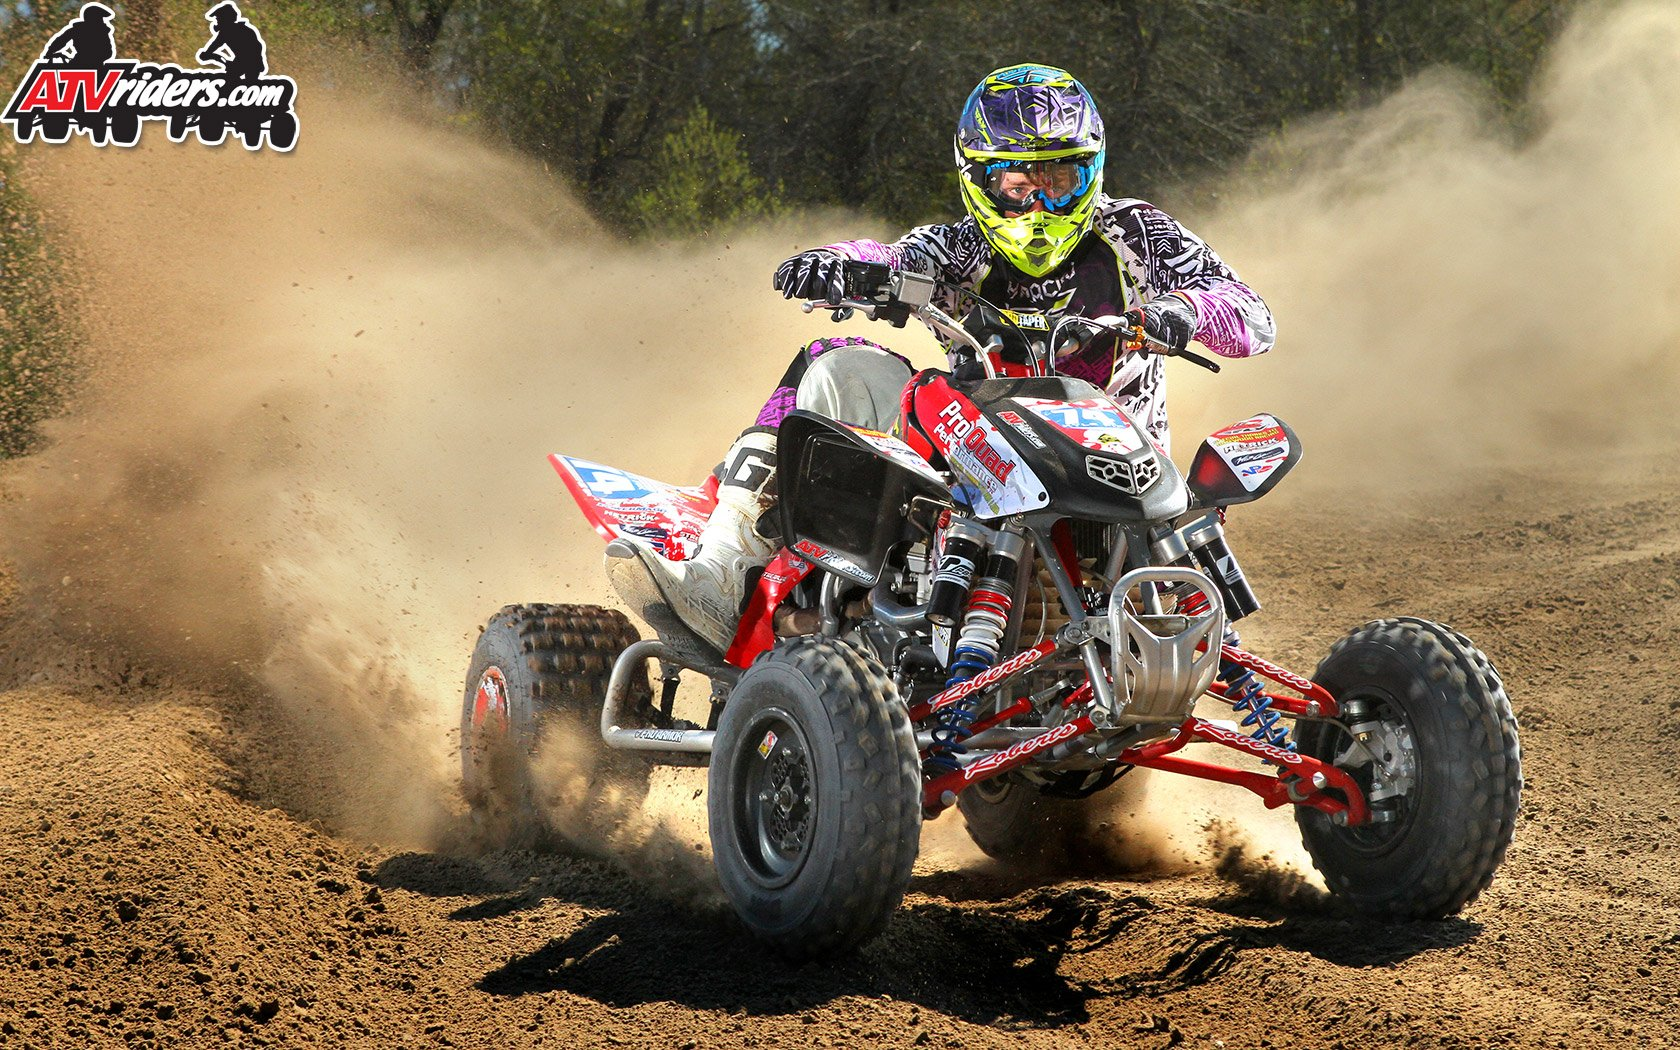 Kyle Fix   Honda 450R ATV   Wallpaper 1680x1050